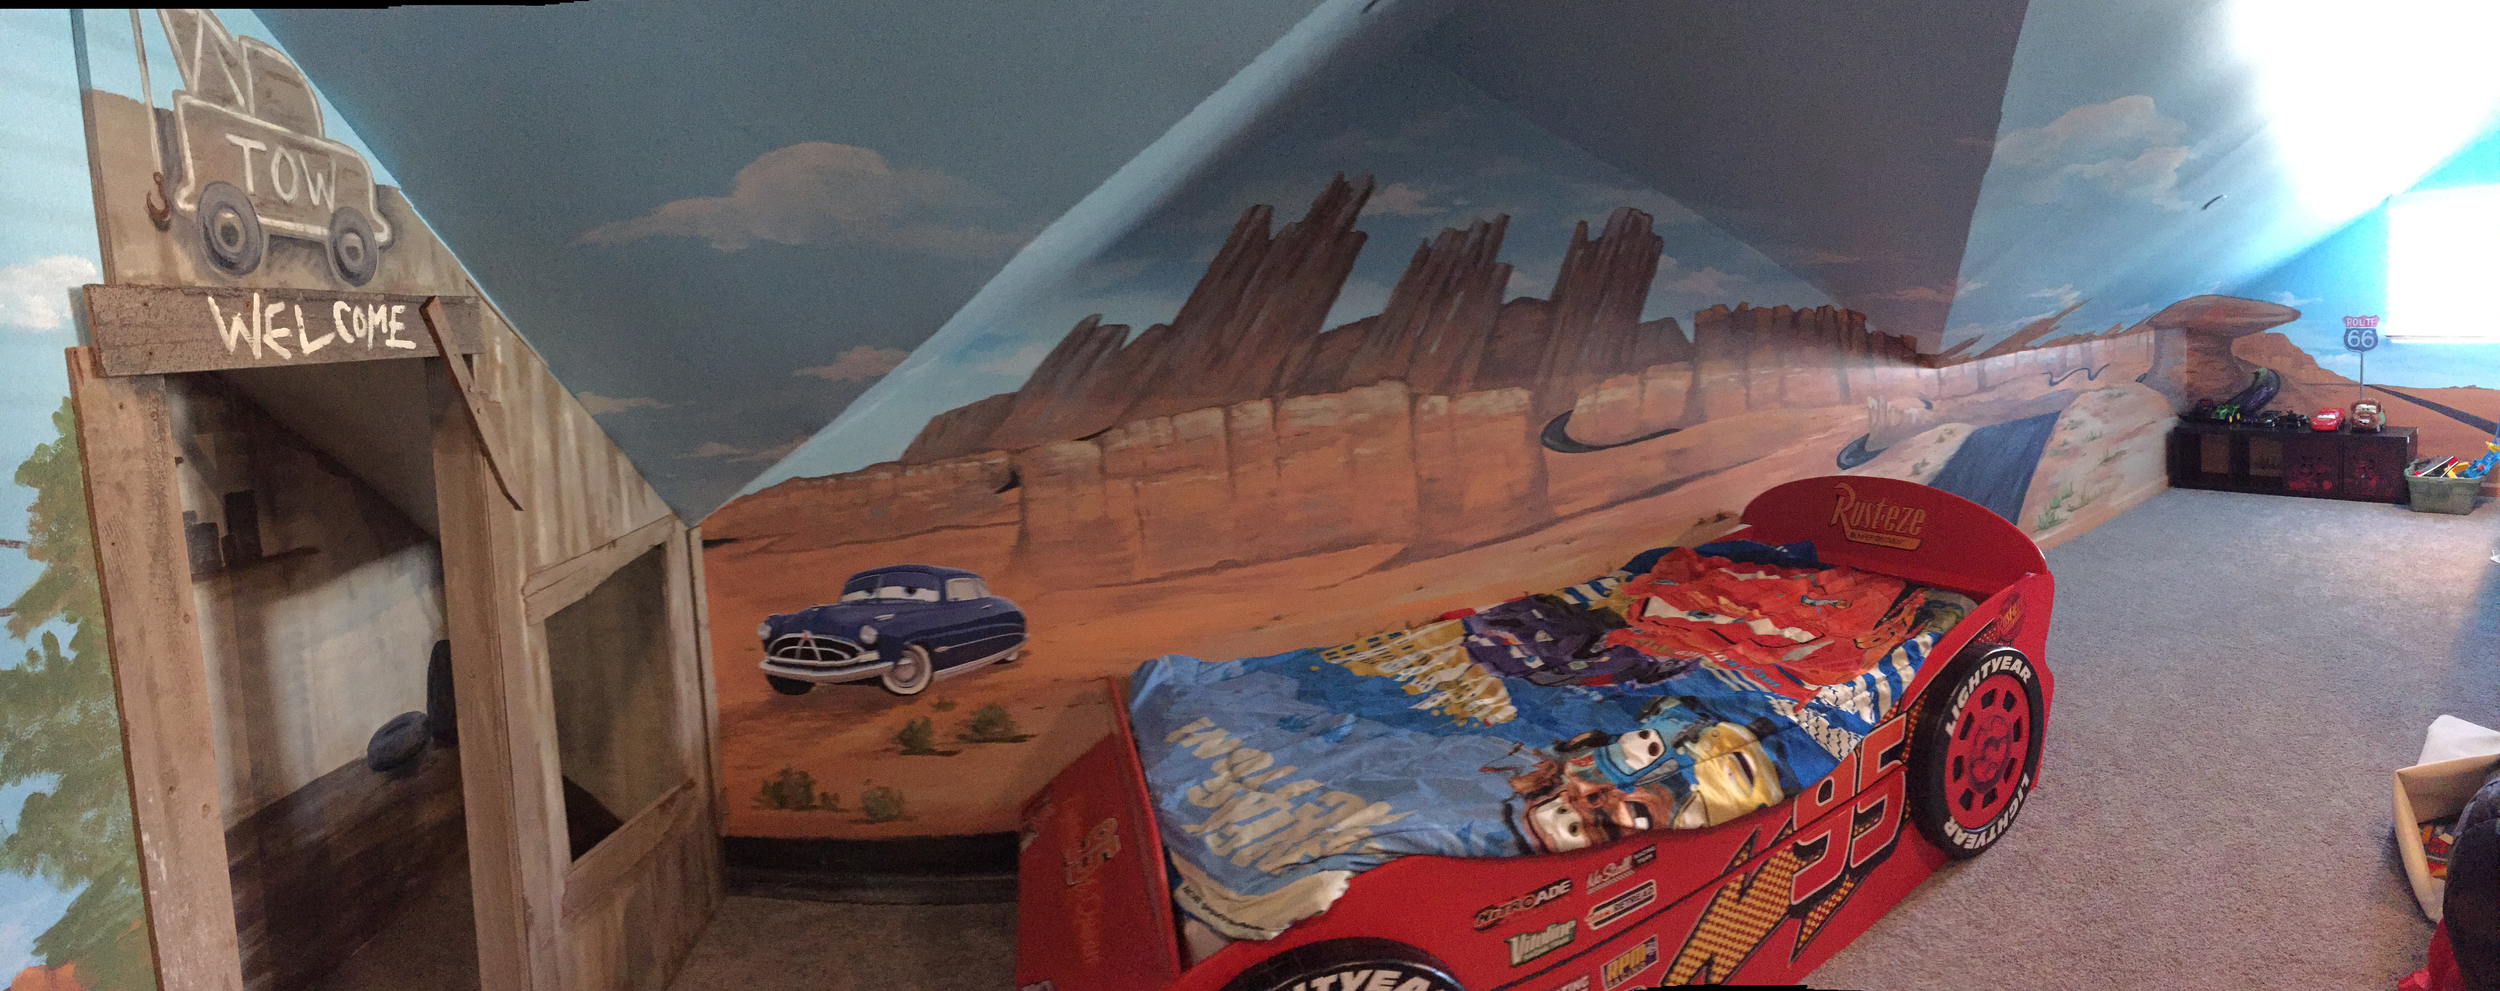 Disney CARS Themed Playspace/Bedroom with Mural